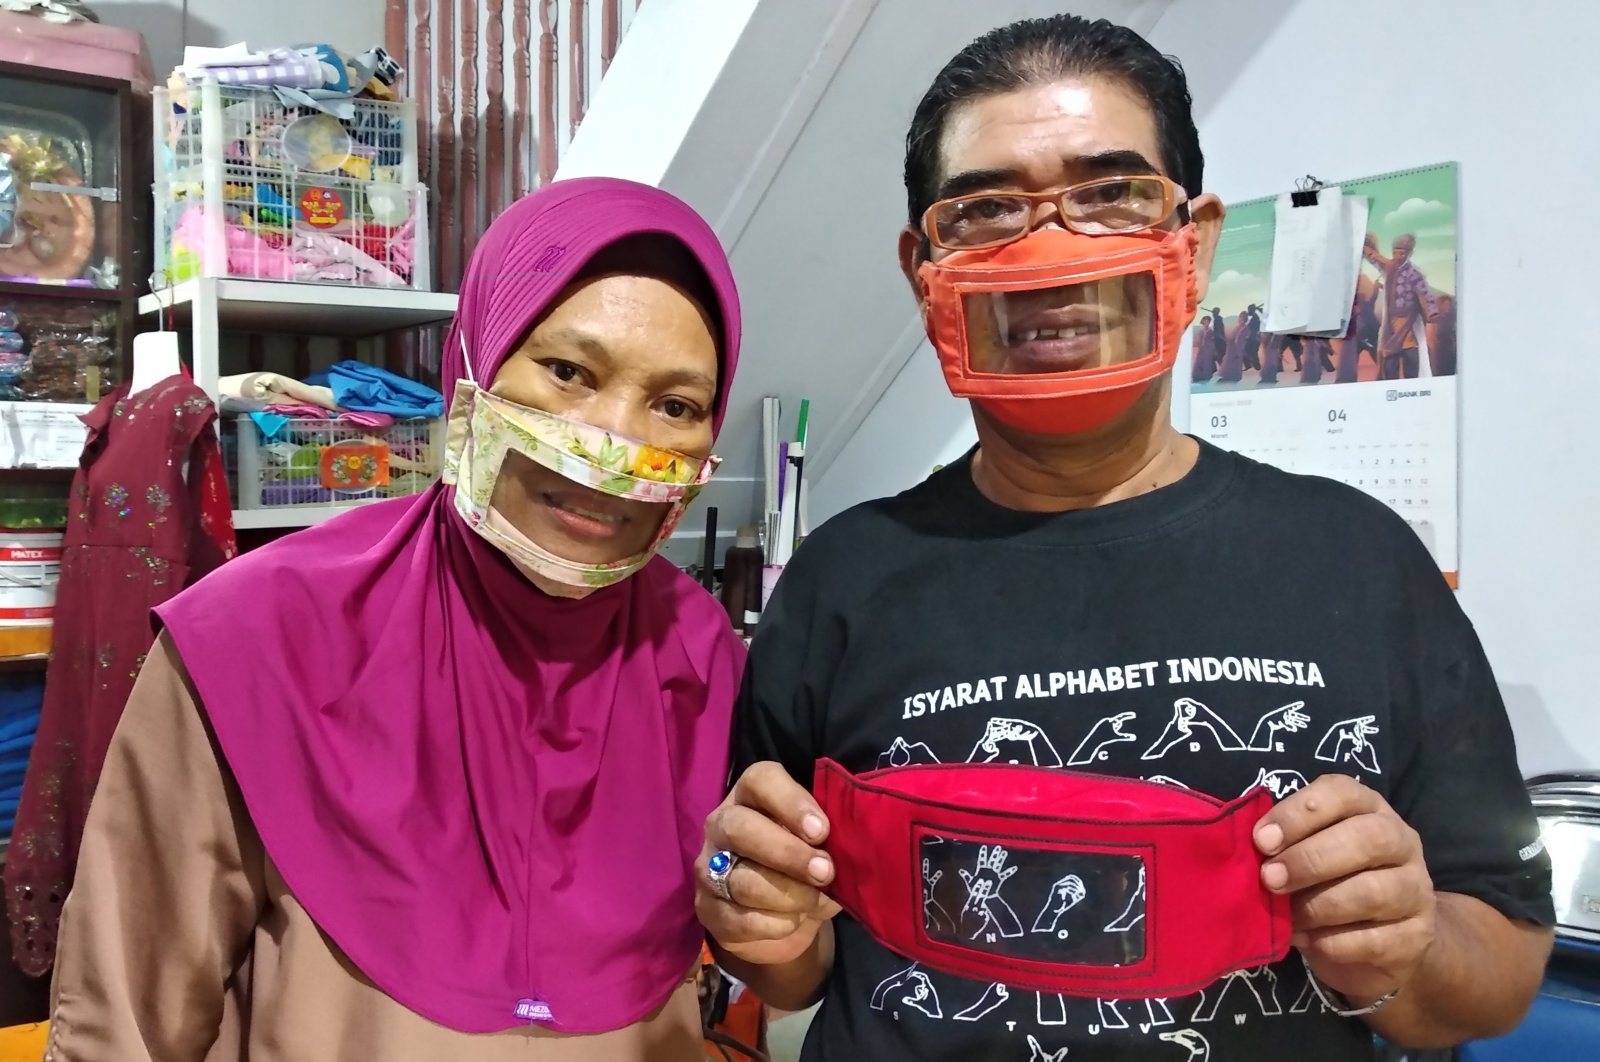 Imama Saroso (R) and his wife Faizah Badaruddin (L), who are hearing and speech-impaired, pose with homemade face masks which enable people with disabilities like them to read lips when communicating, in Makassar, South Sulawesi, April 28, 2020. (AFP Photo)